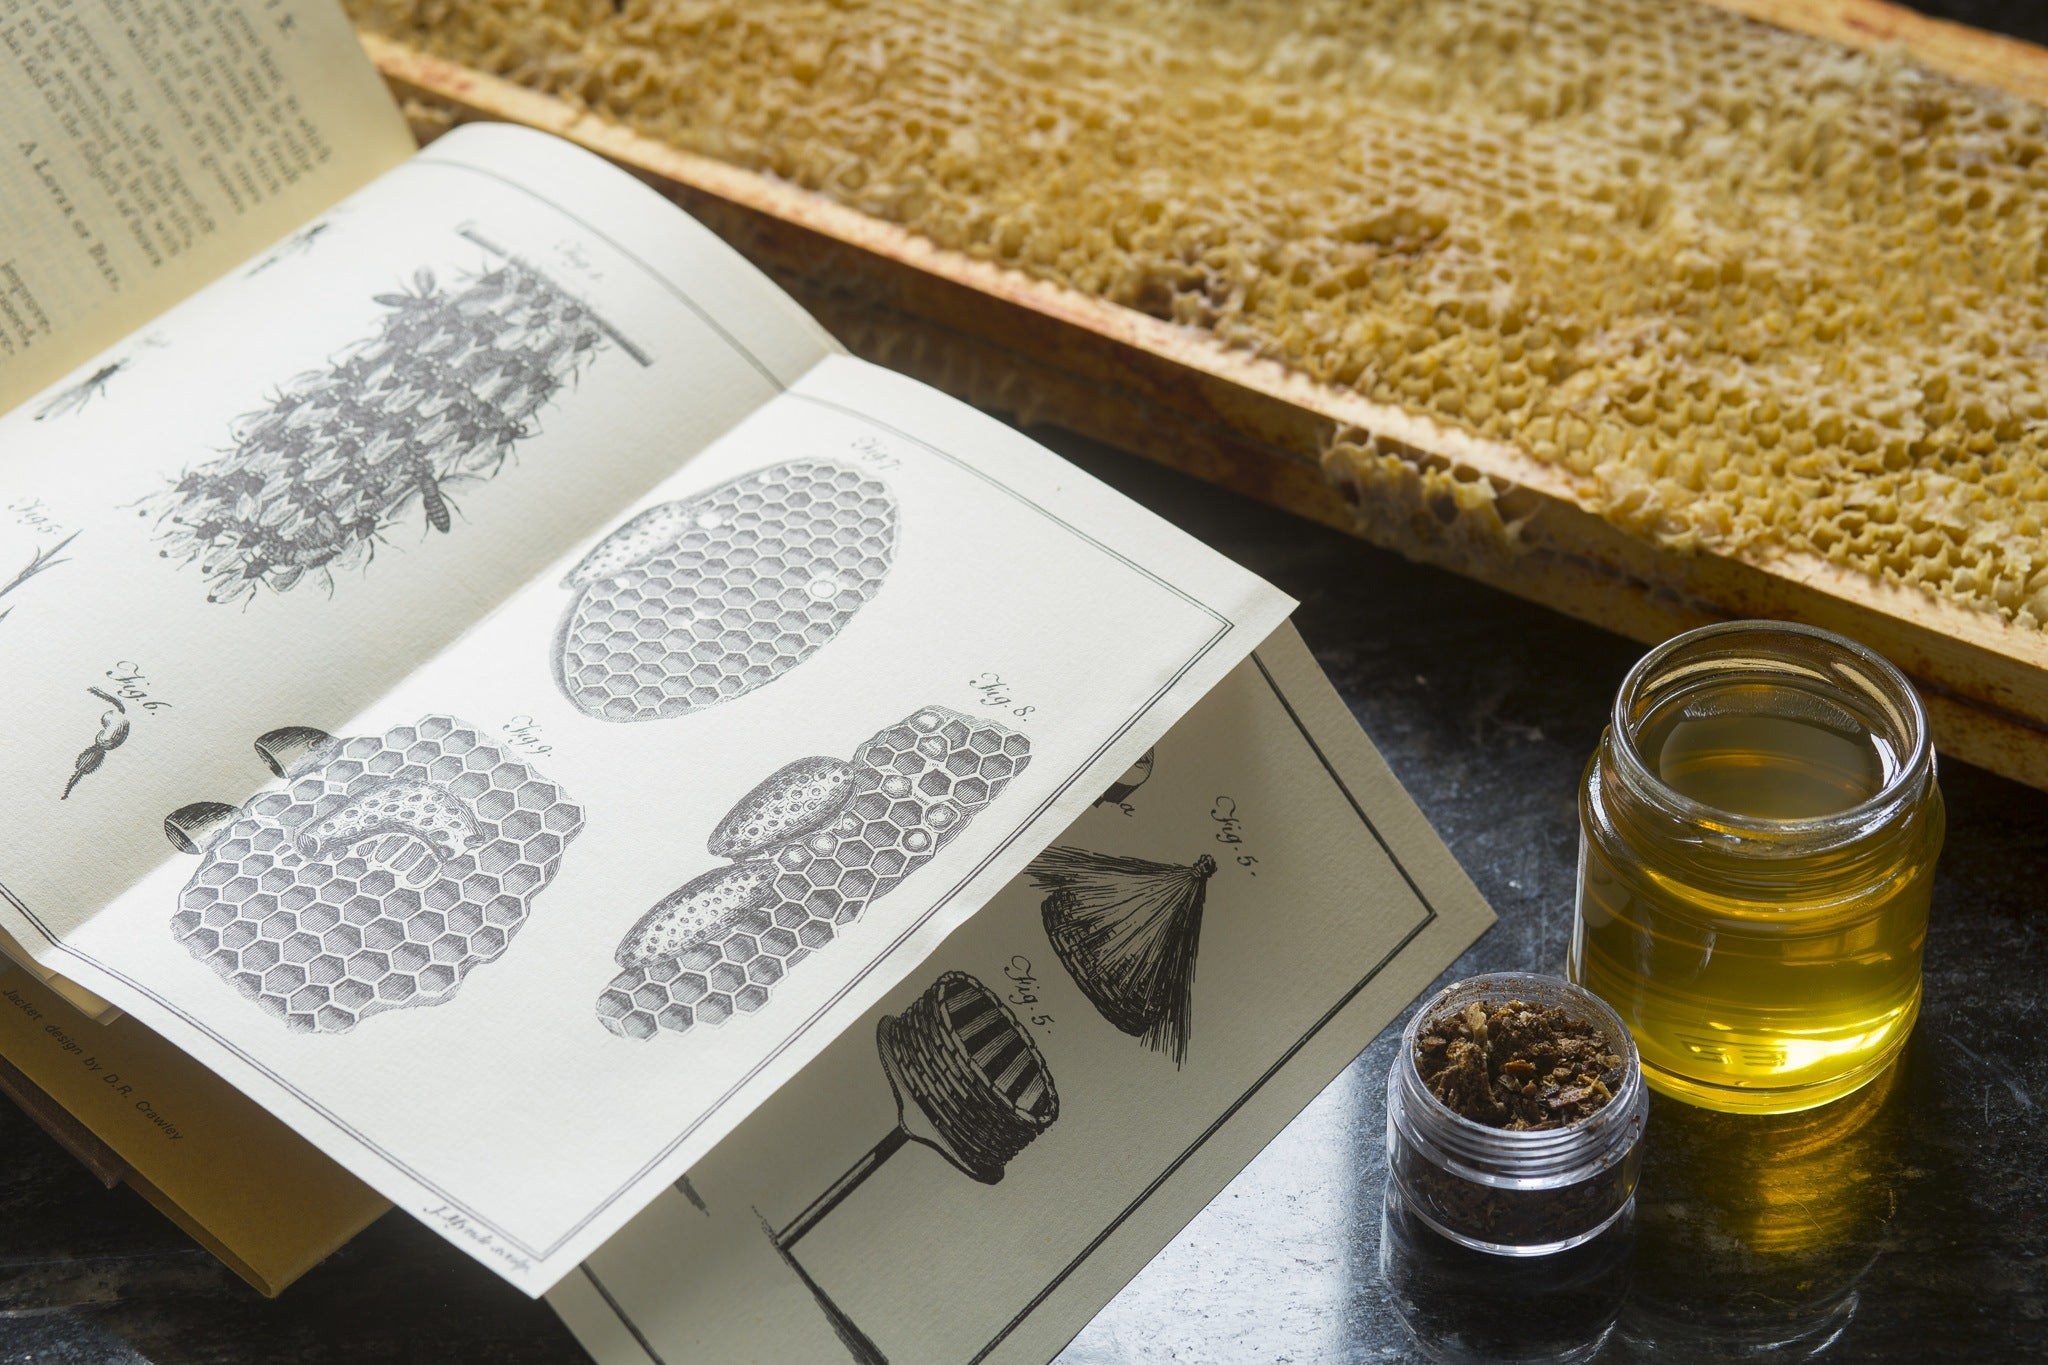 Vintage Book with Honey, Propolis and Beeswax